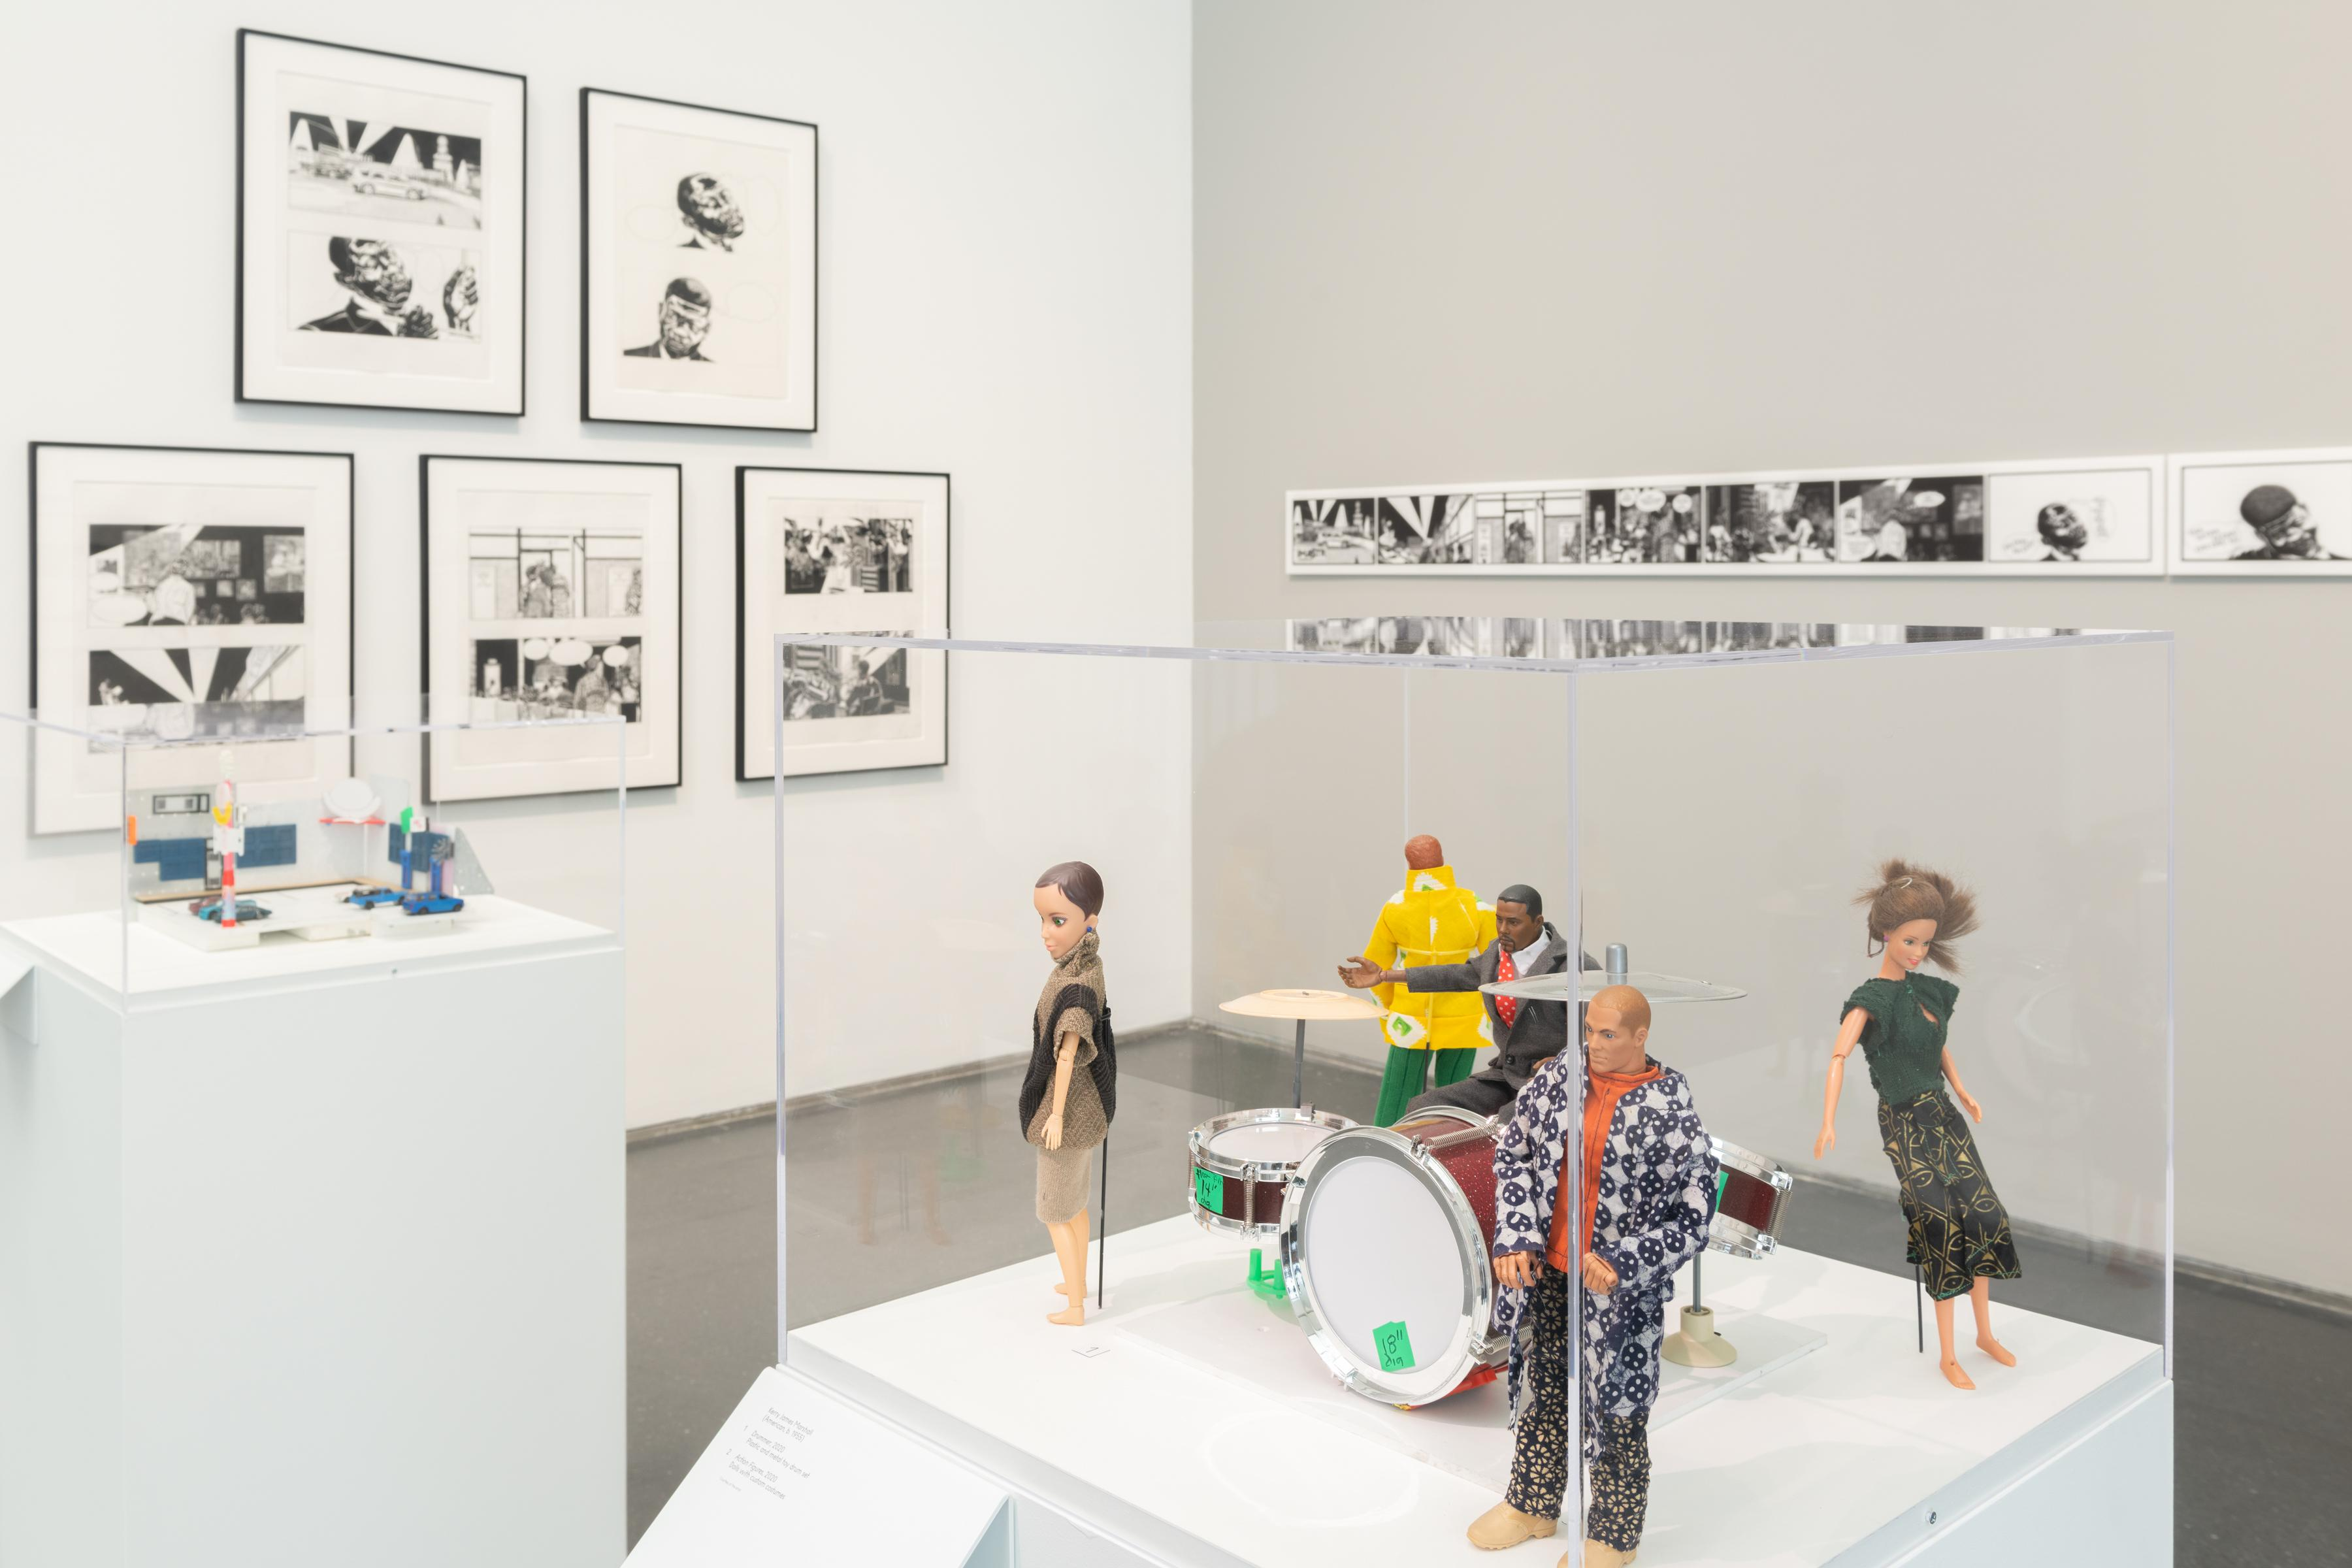 Exhibition interior with toy figurine band in the foreground